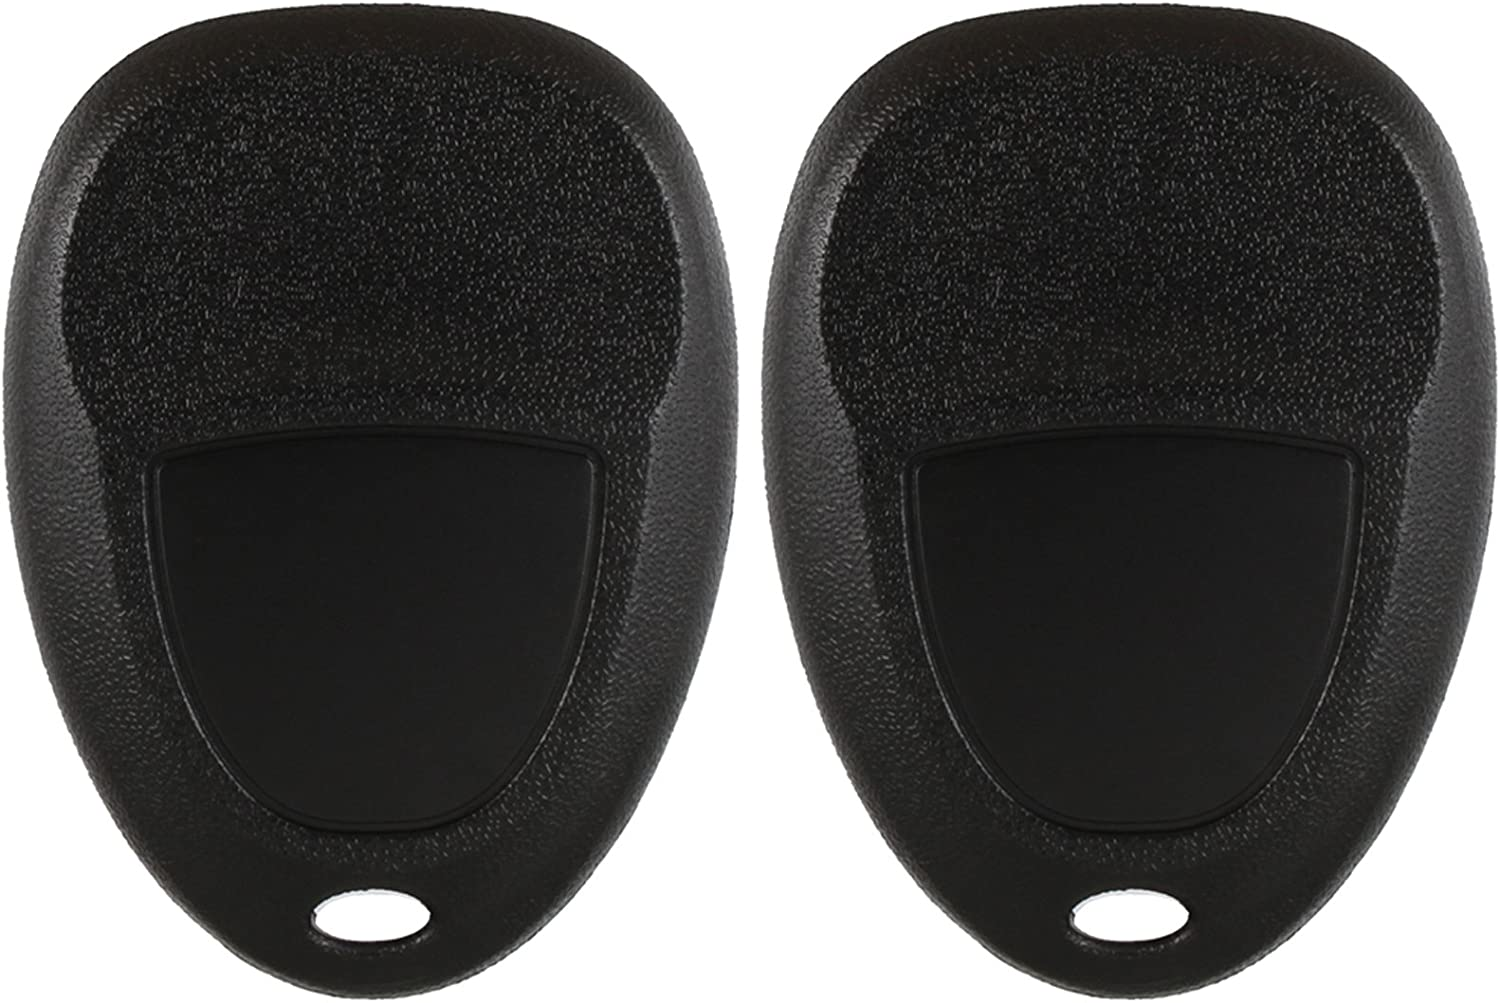 2 Pack ID 46 25839476 Discount Keyless Replacement Key Fob Car Remote and Uncut Transponder Key Compatible with 15913415